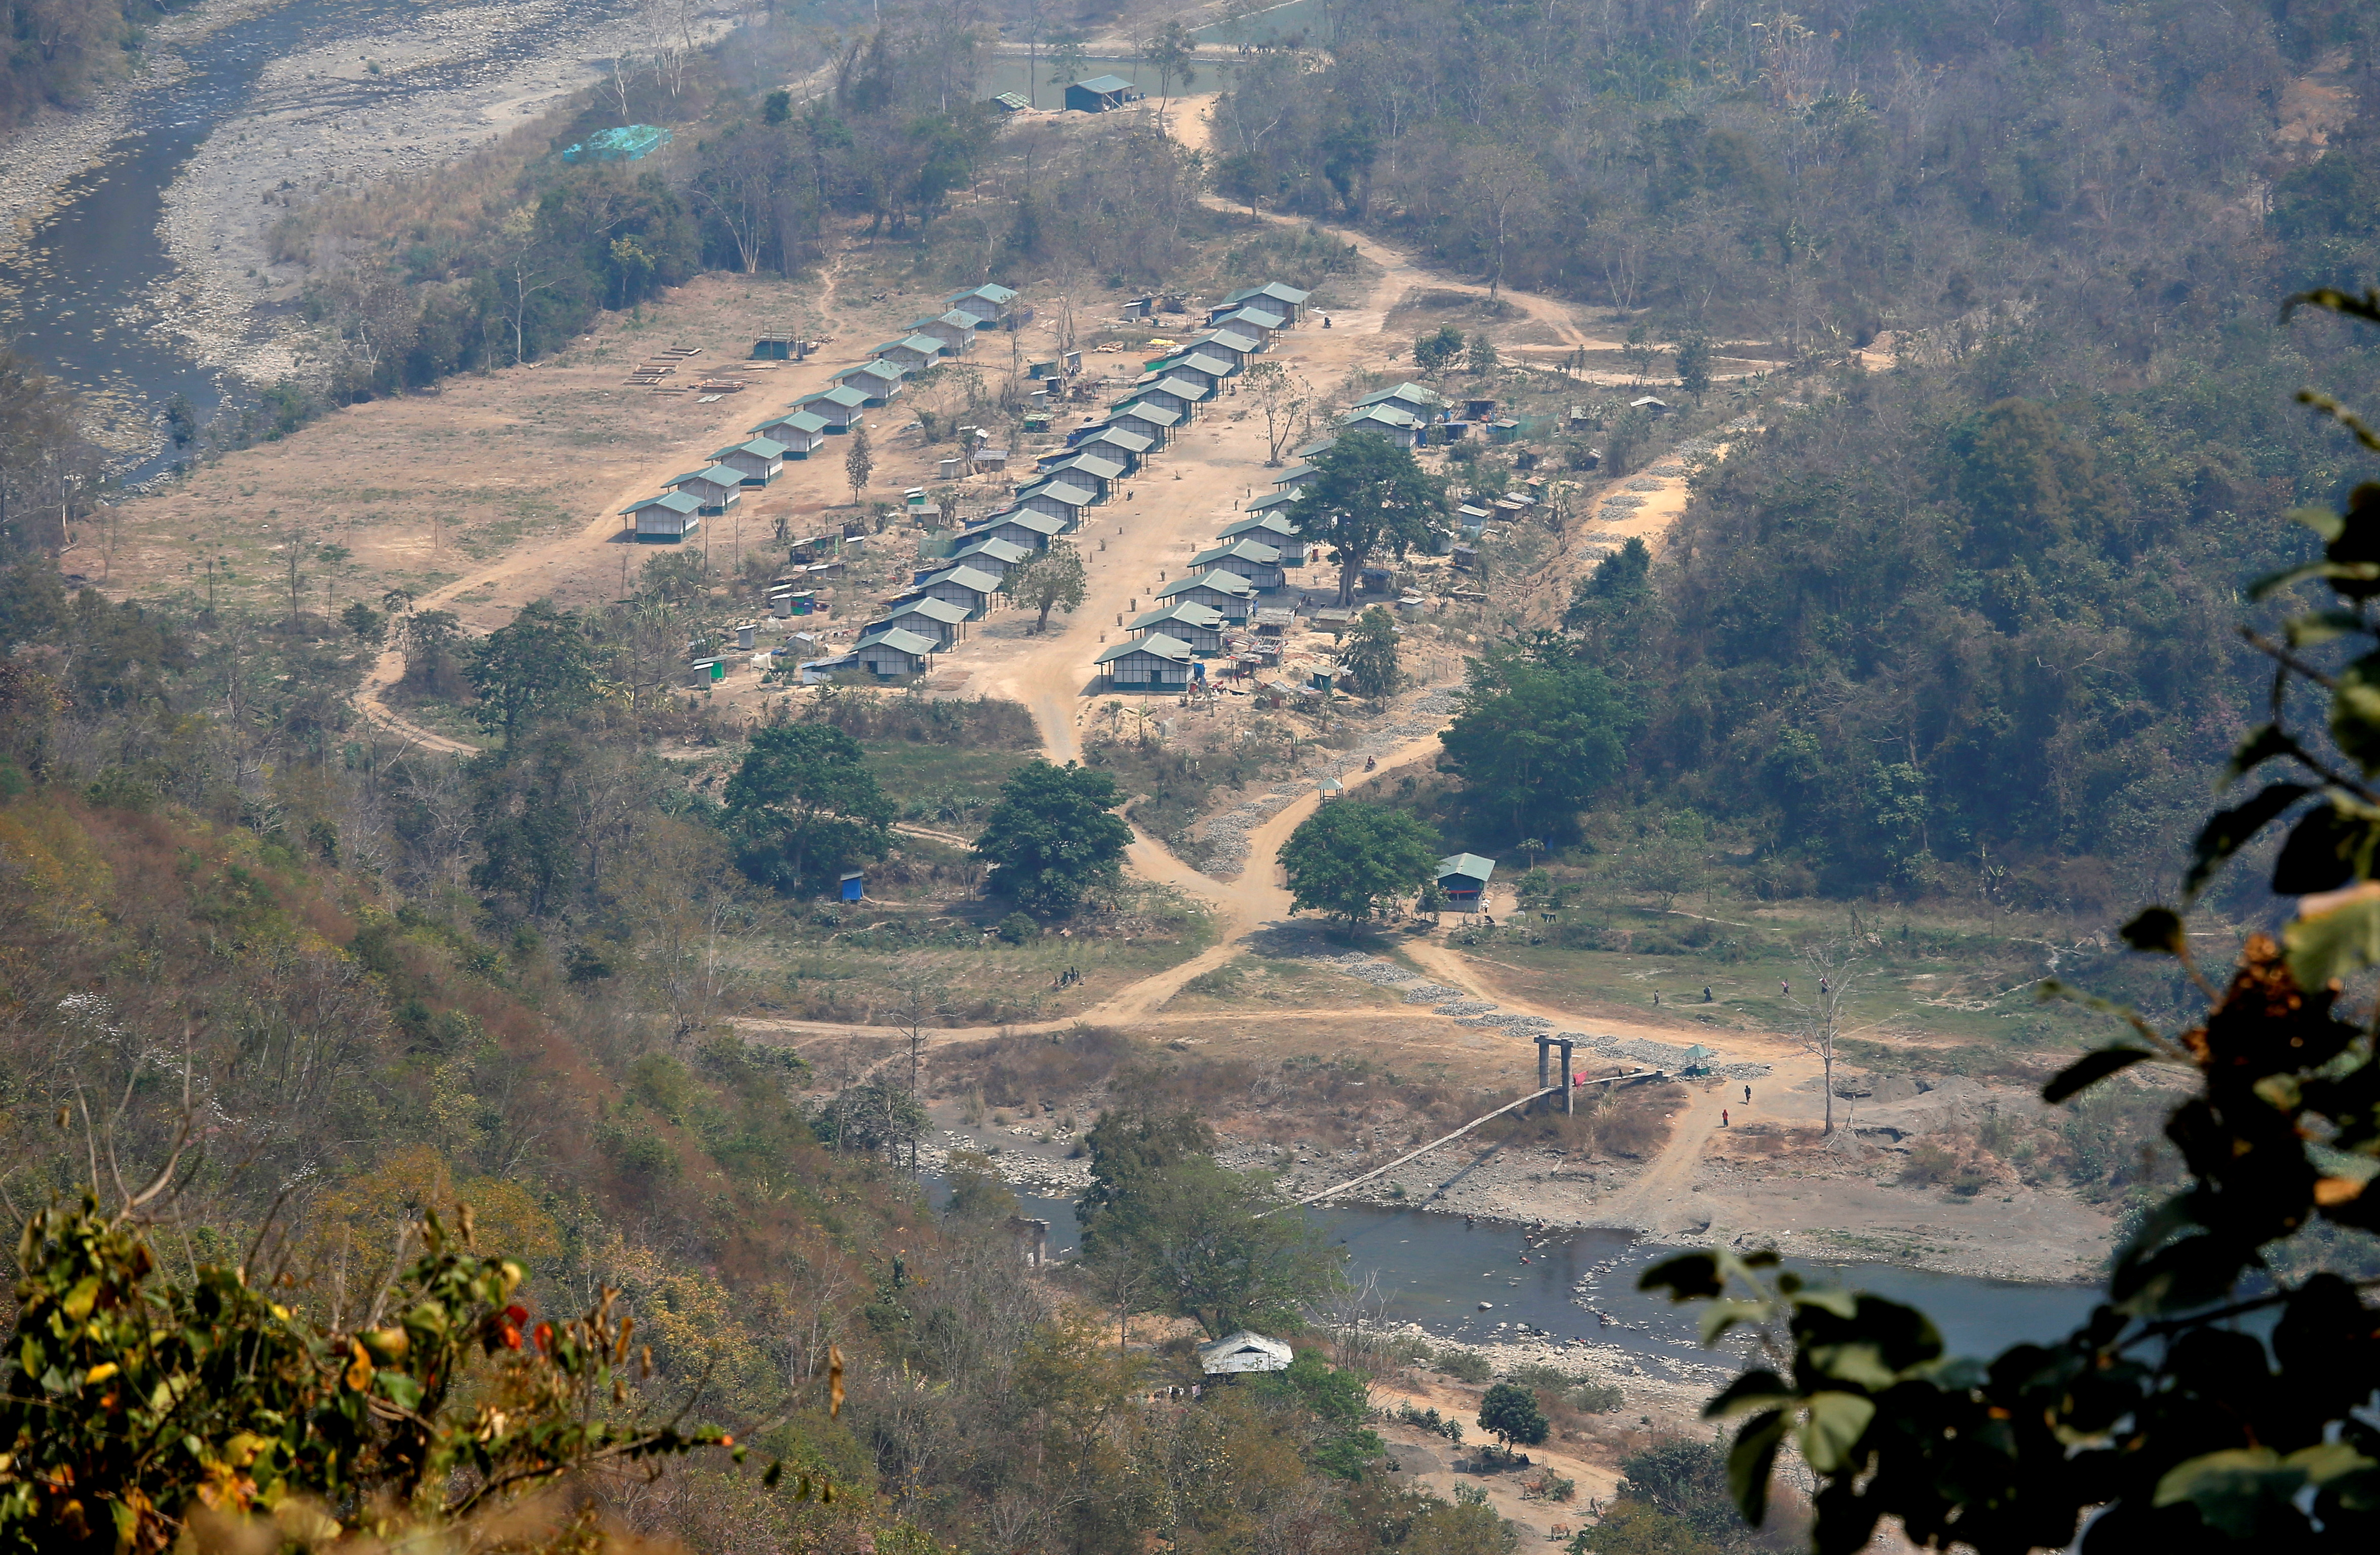 A general view of a camp of the Myanmar ethnic rebel group Chin National Front is seen on the Myanmar side of the India-Myanmar border close to the Indian village of Farkawn in the northeastern state of Mizoram, India, March 13, 2021. Picture taken March 13, 2021. REUTERS/Rupak De Chowdhuri/File Photo